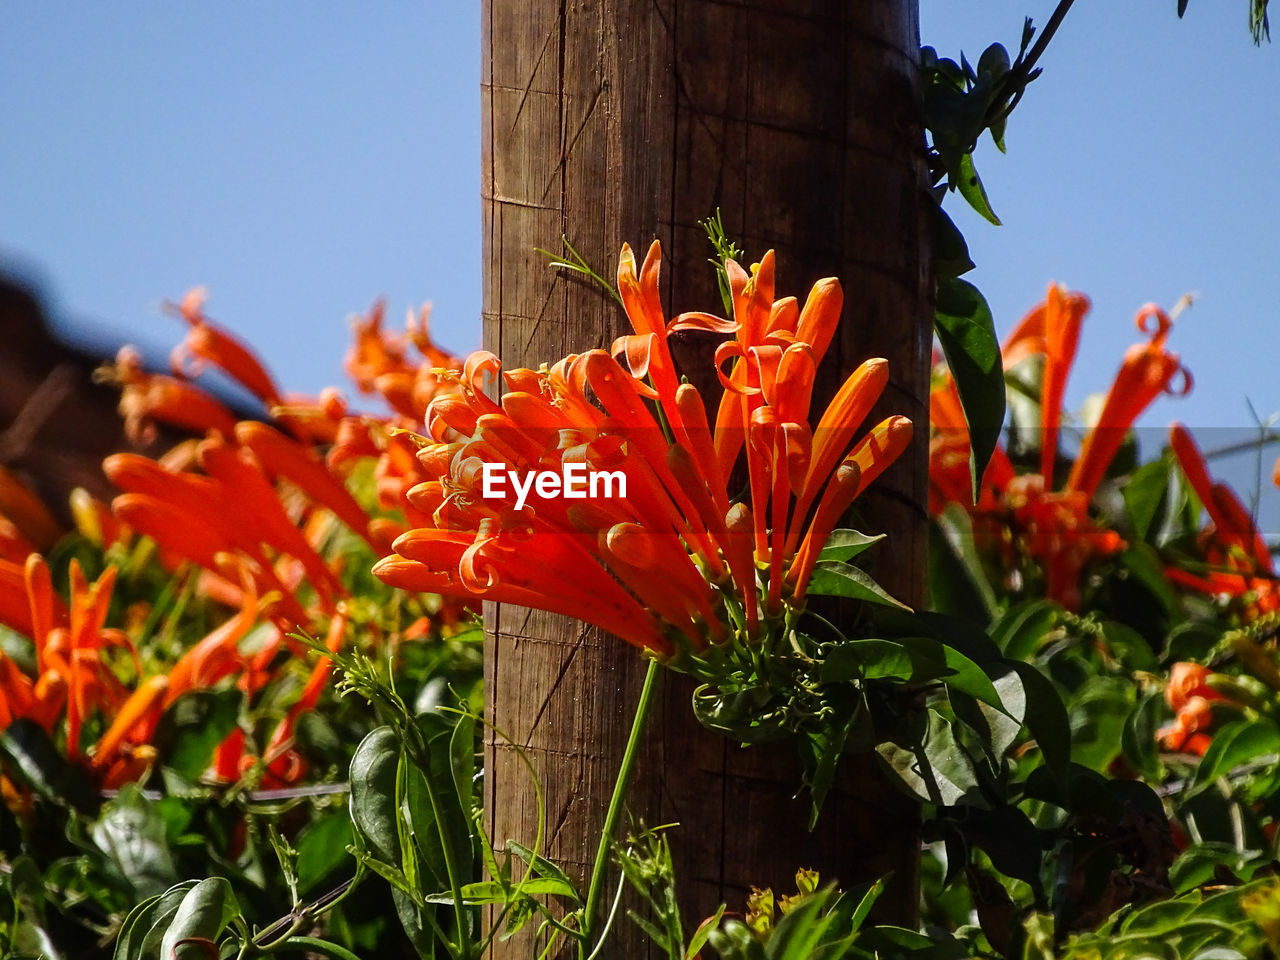 flowering plant, flower, plant, freshness, vulnerability, growth, fragility, petal, beauty in nature, orange color, close-up, flower head, nature, inflorescence, no people, day, focus on foreground, outdoors, botany, red, pollen